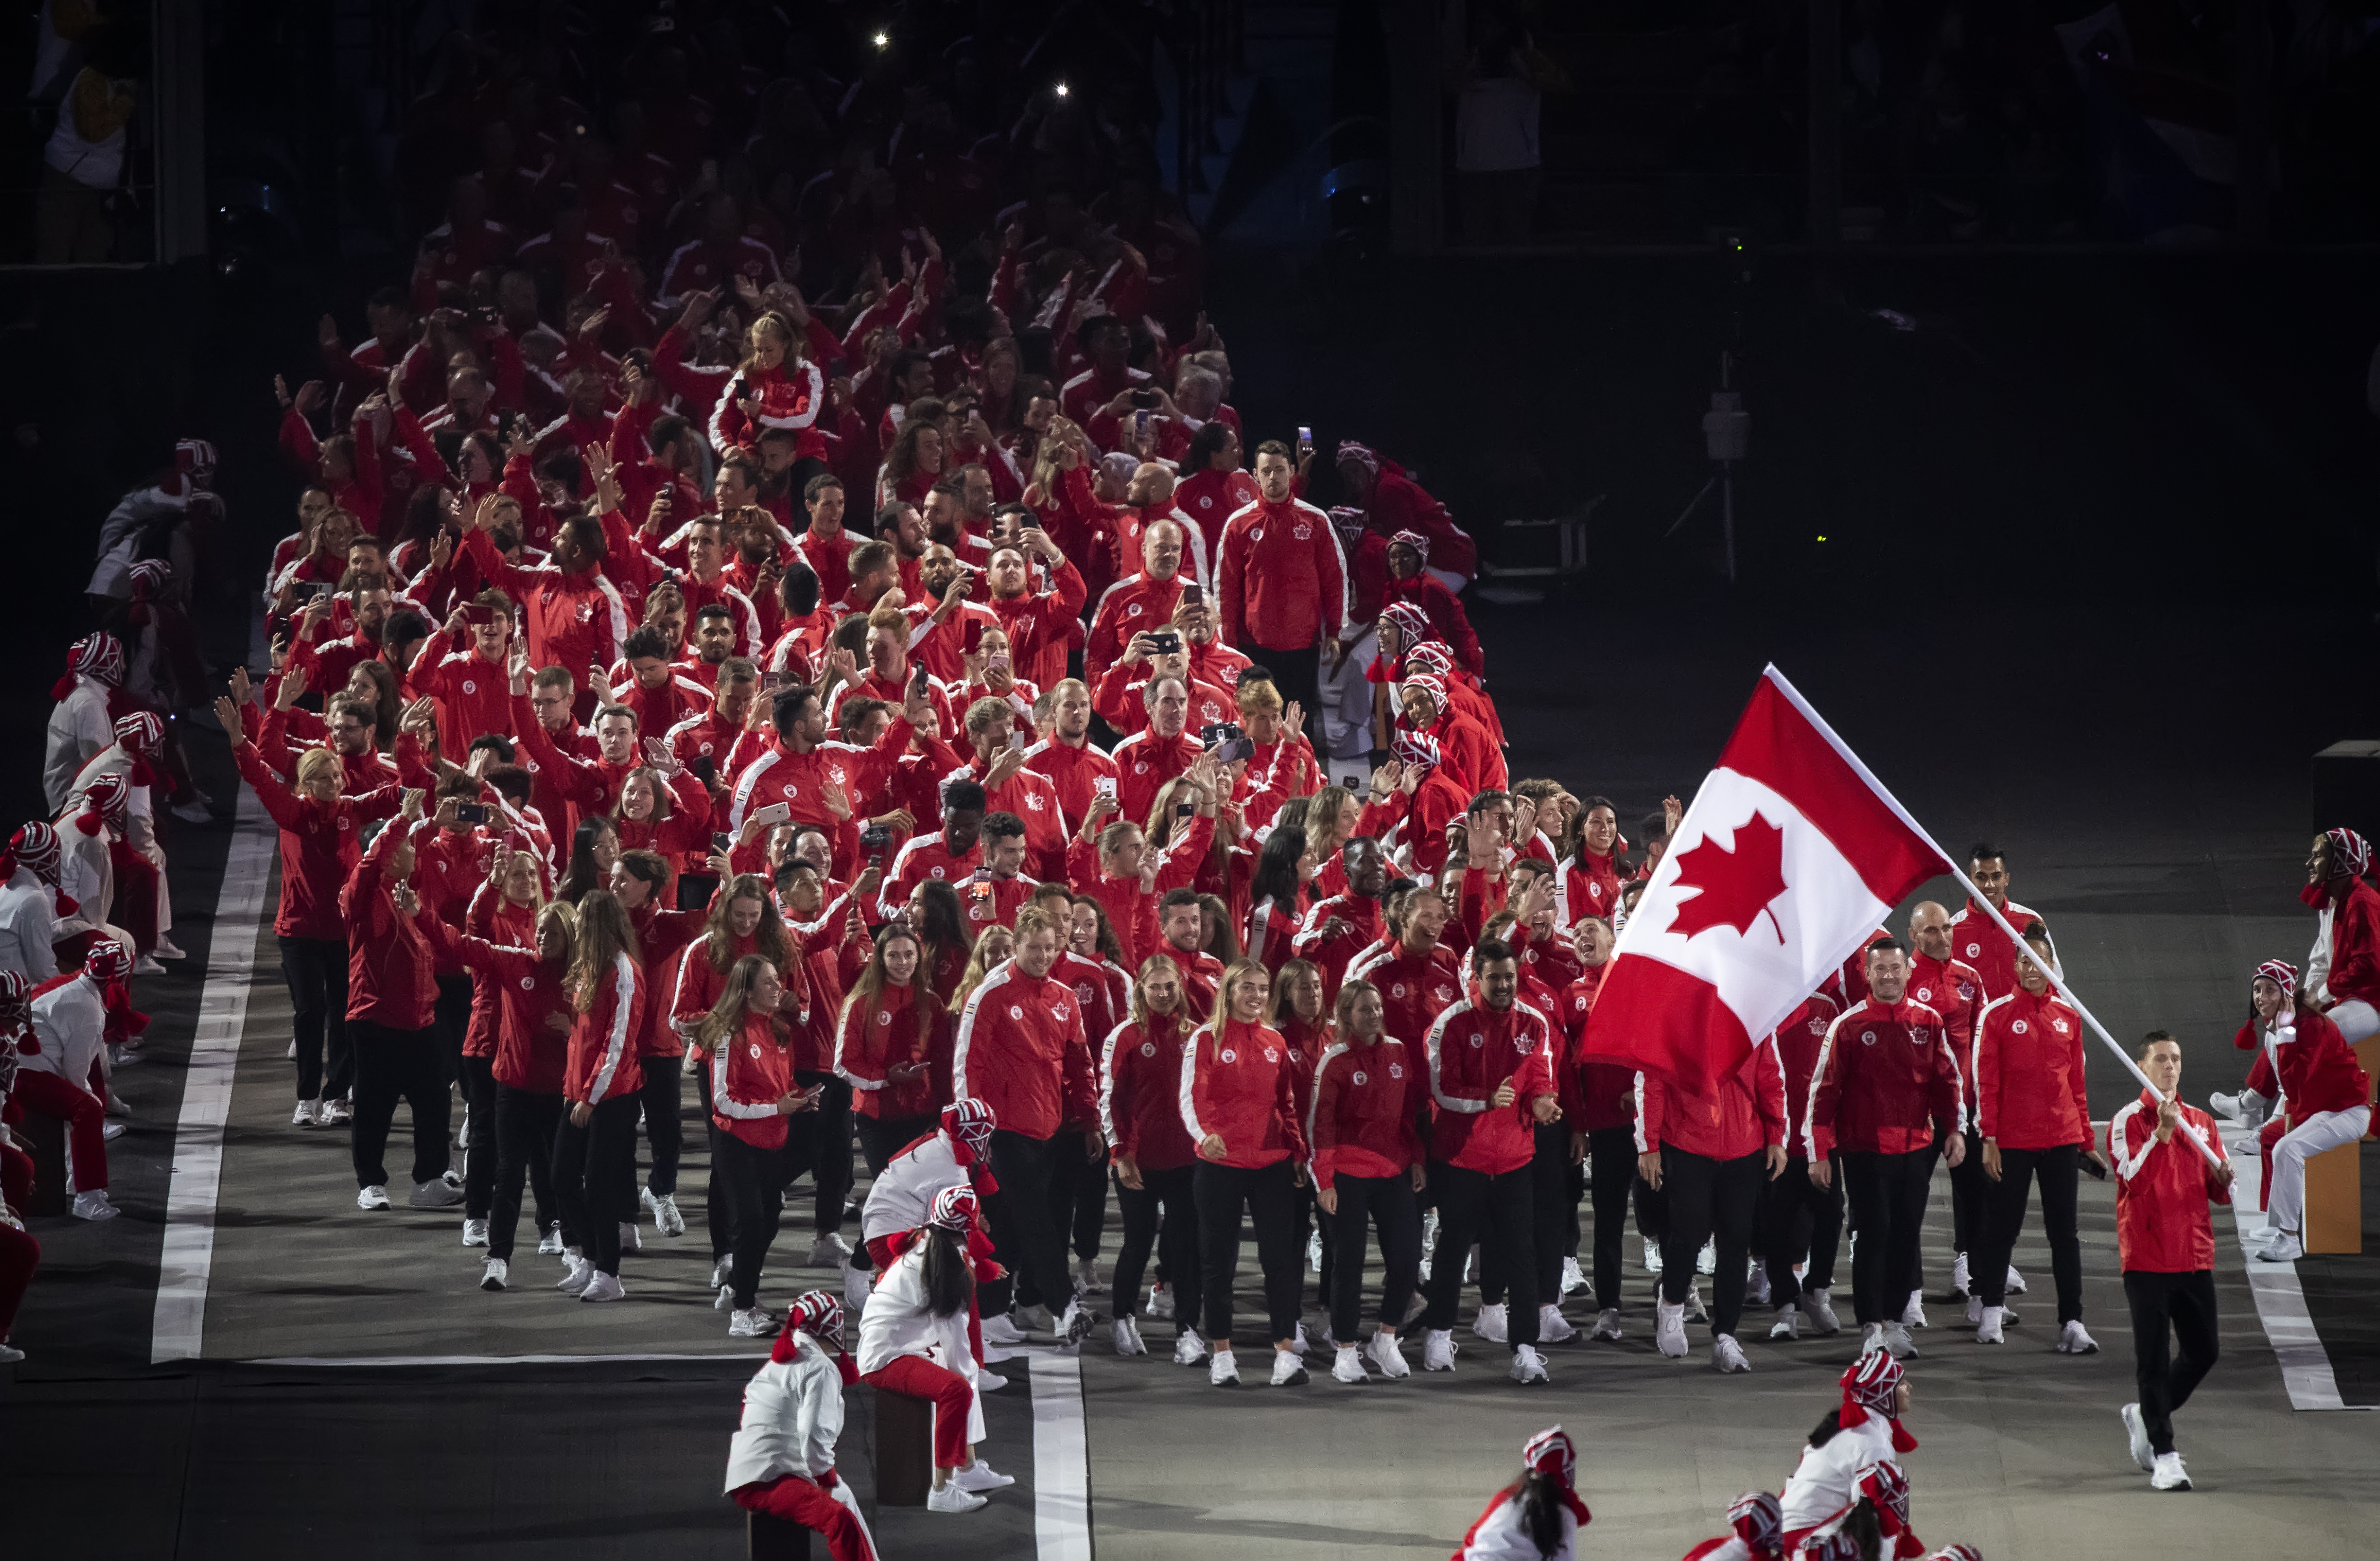 Scott Tupper leads Team Canada into the Opening Ceremony of the Lima 2019 Pan Am Games.